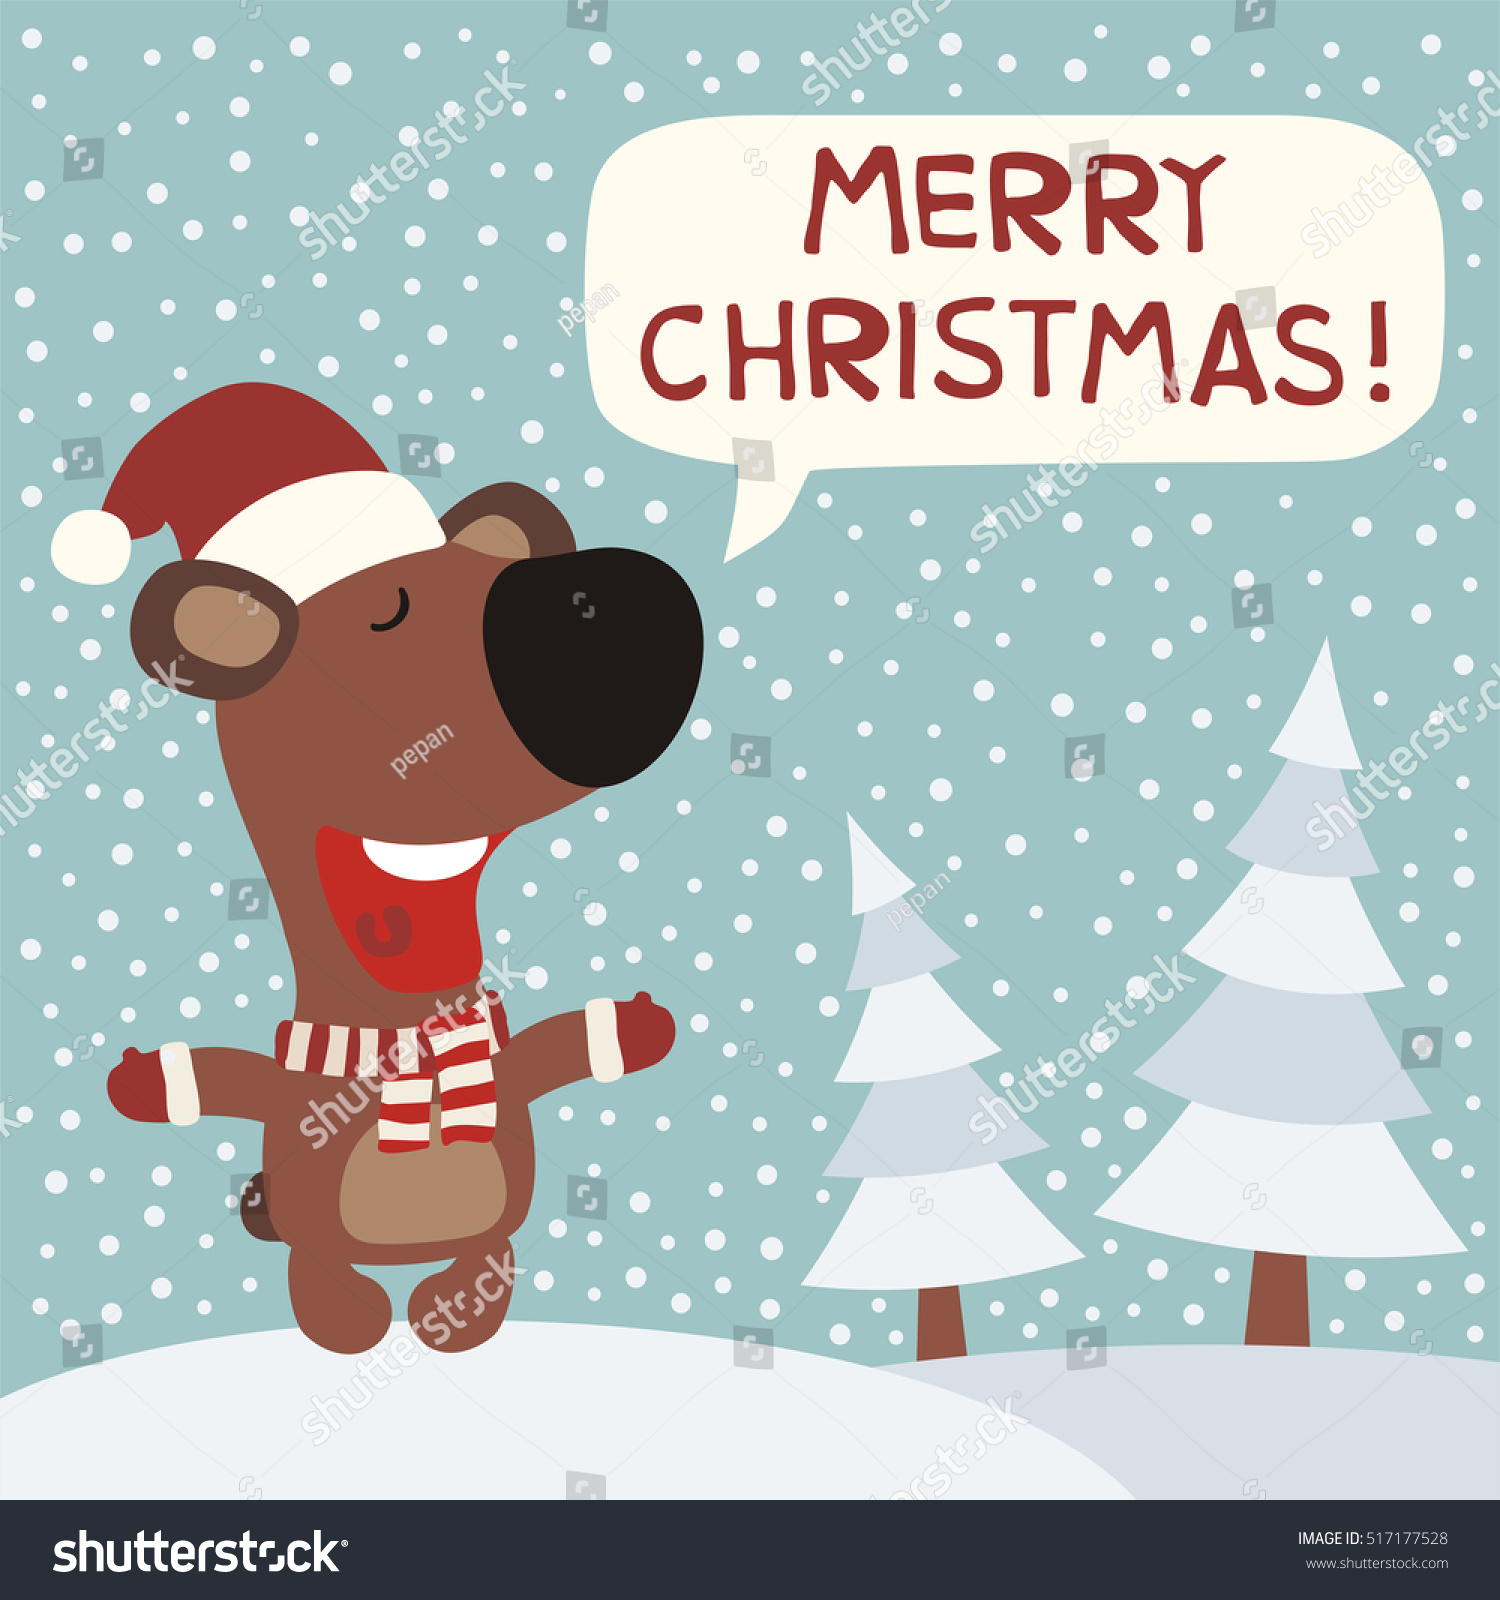 merry christmas funny bear in red hat on background snowflakes in cartoon style greeting - Funny Merry Christmas